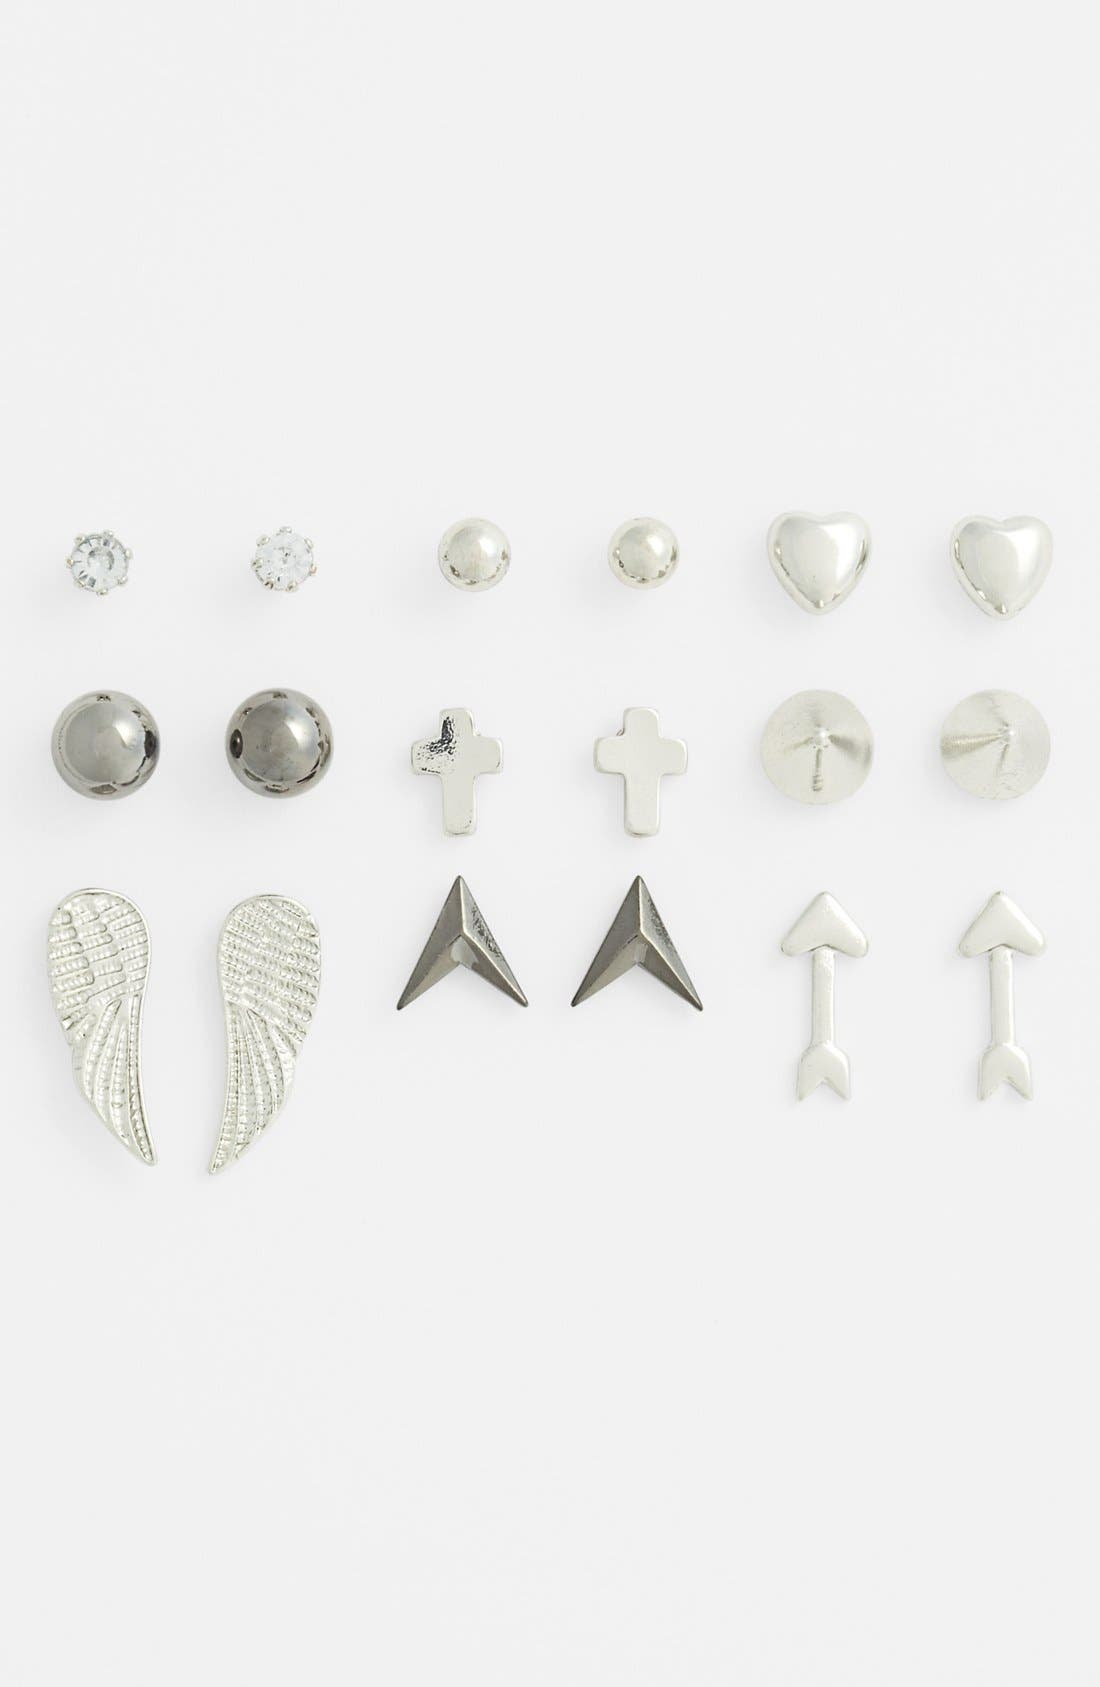 Main Image - Orion Assorted Earrings (Set of 9)